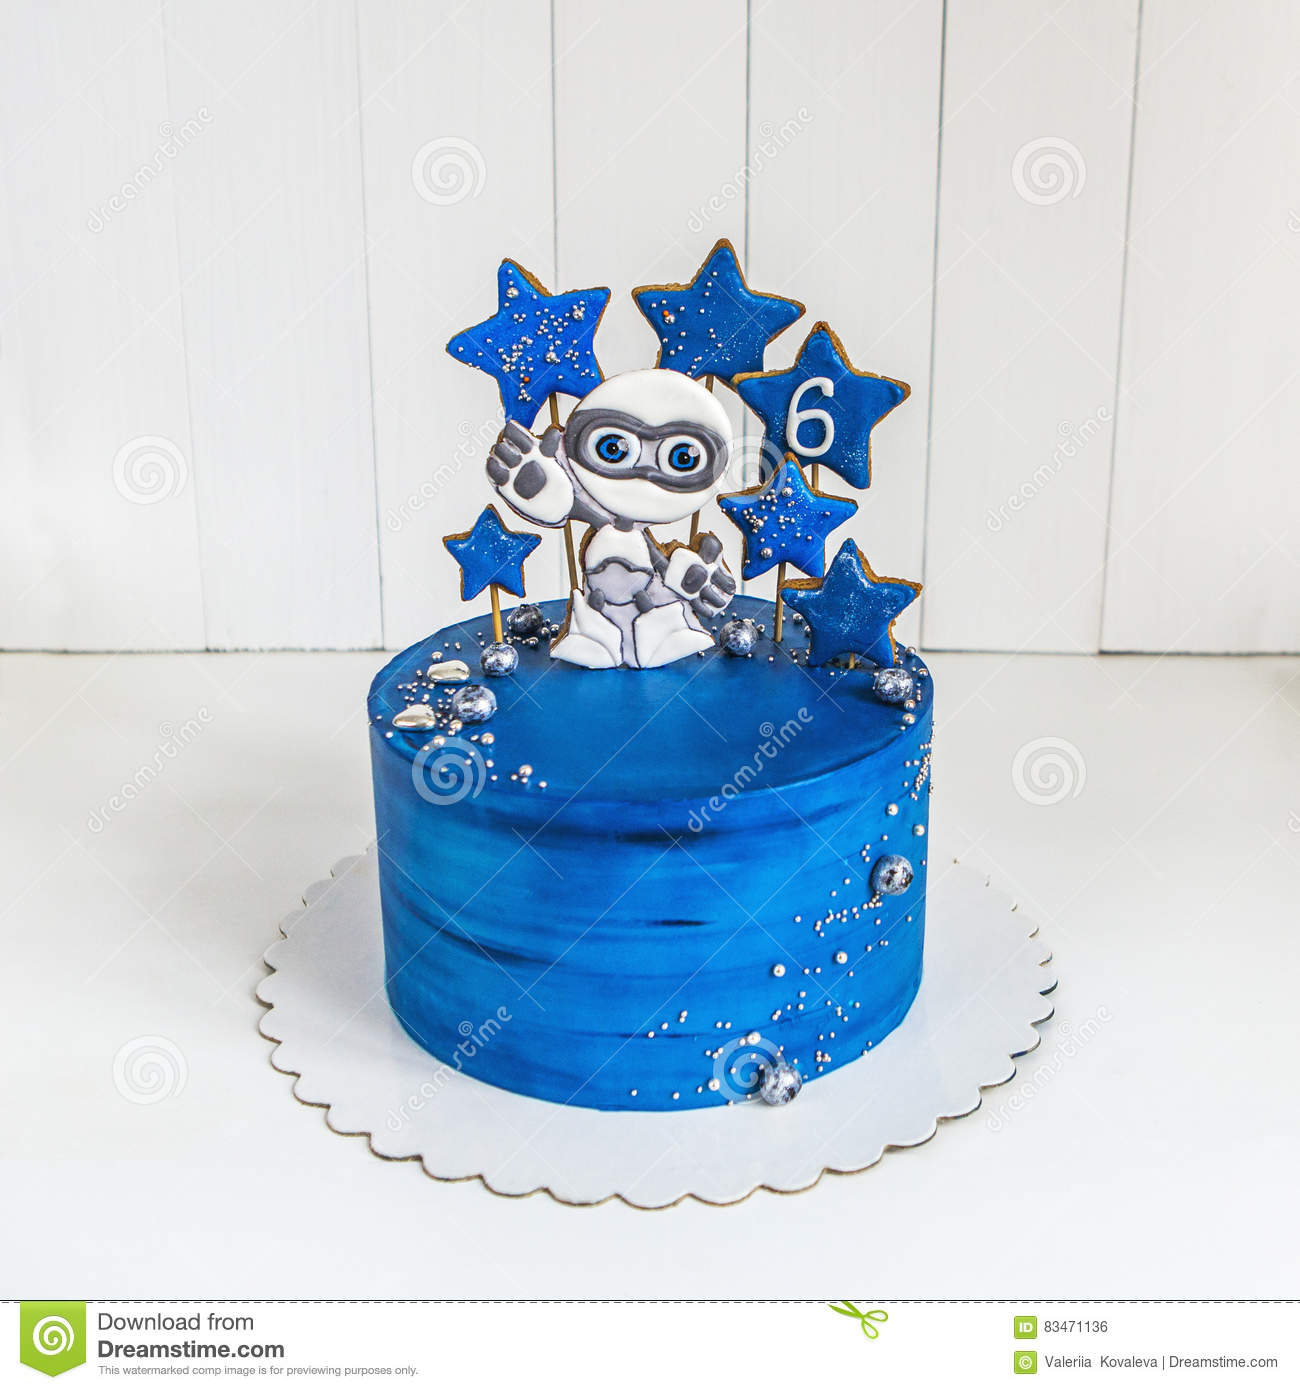 Prime Cake Space Blue With Gingerbread In The Form Of An Alien And The Funny Birthday Cards Online Elaedamsfinfo